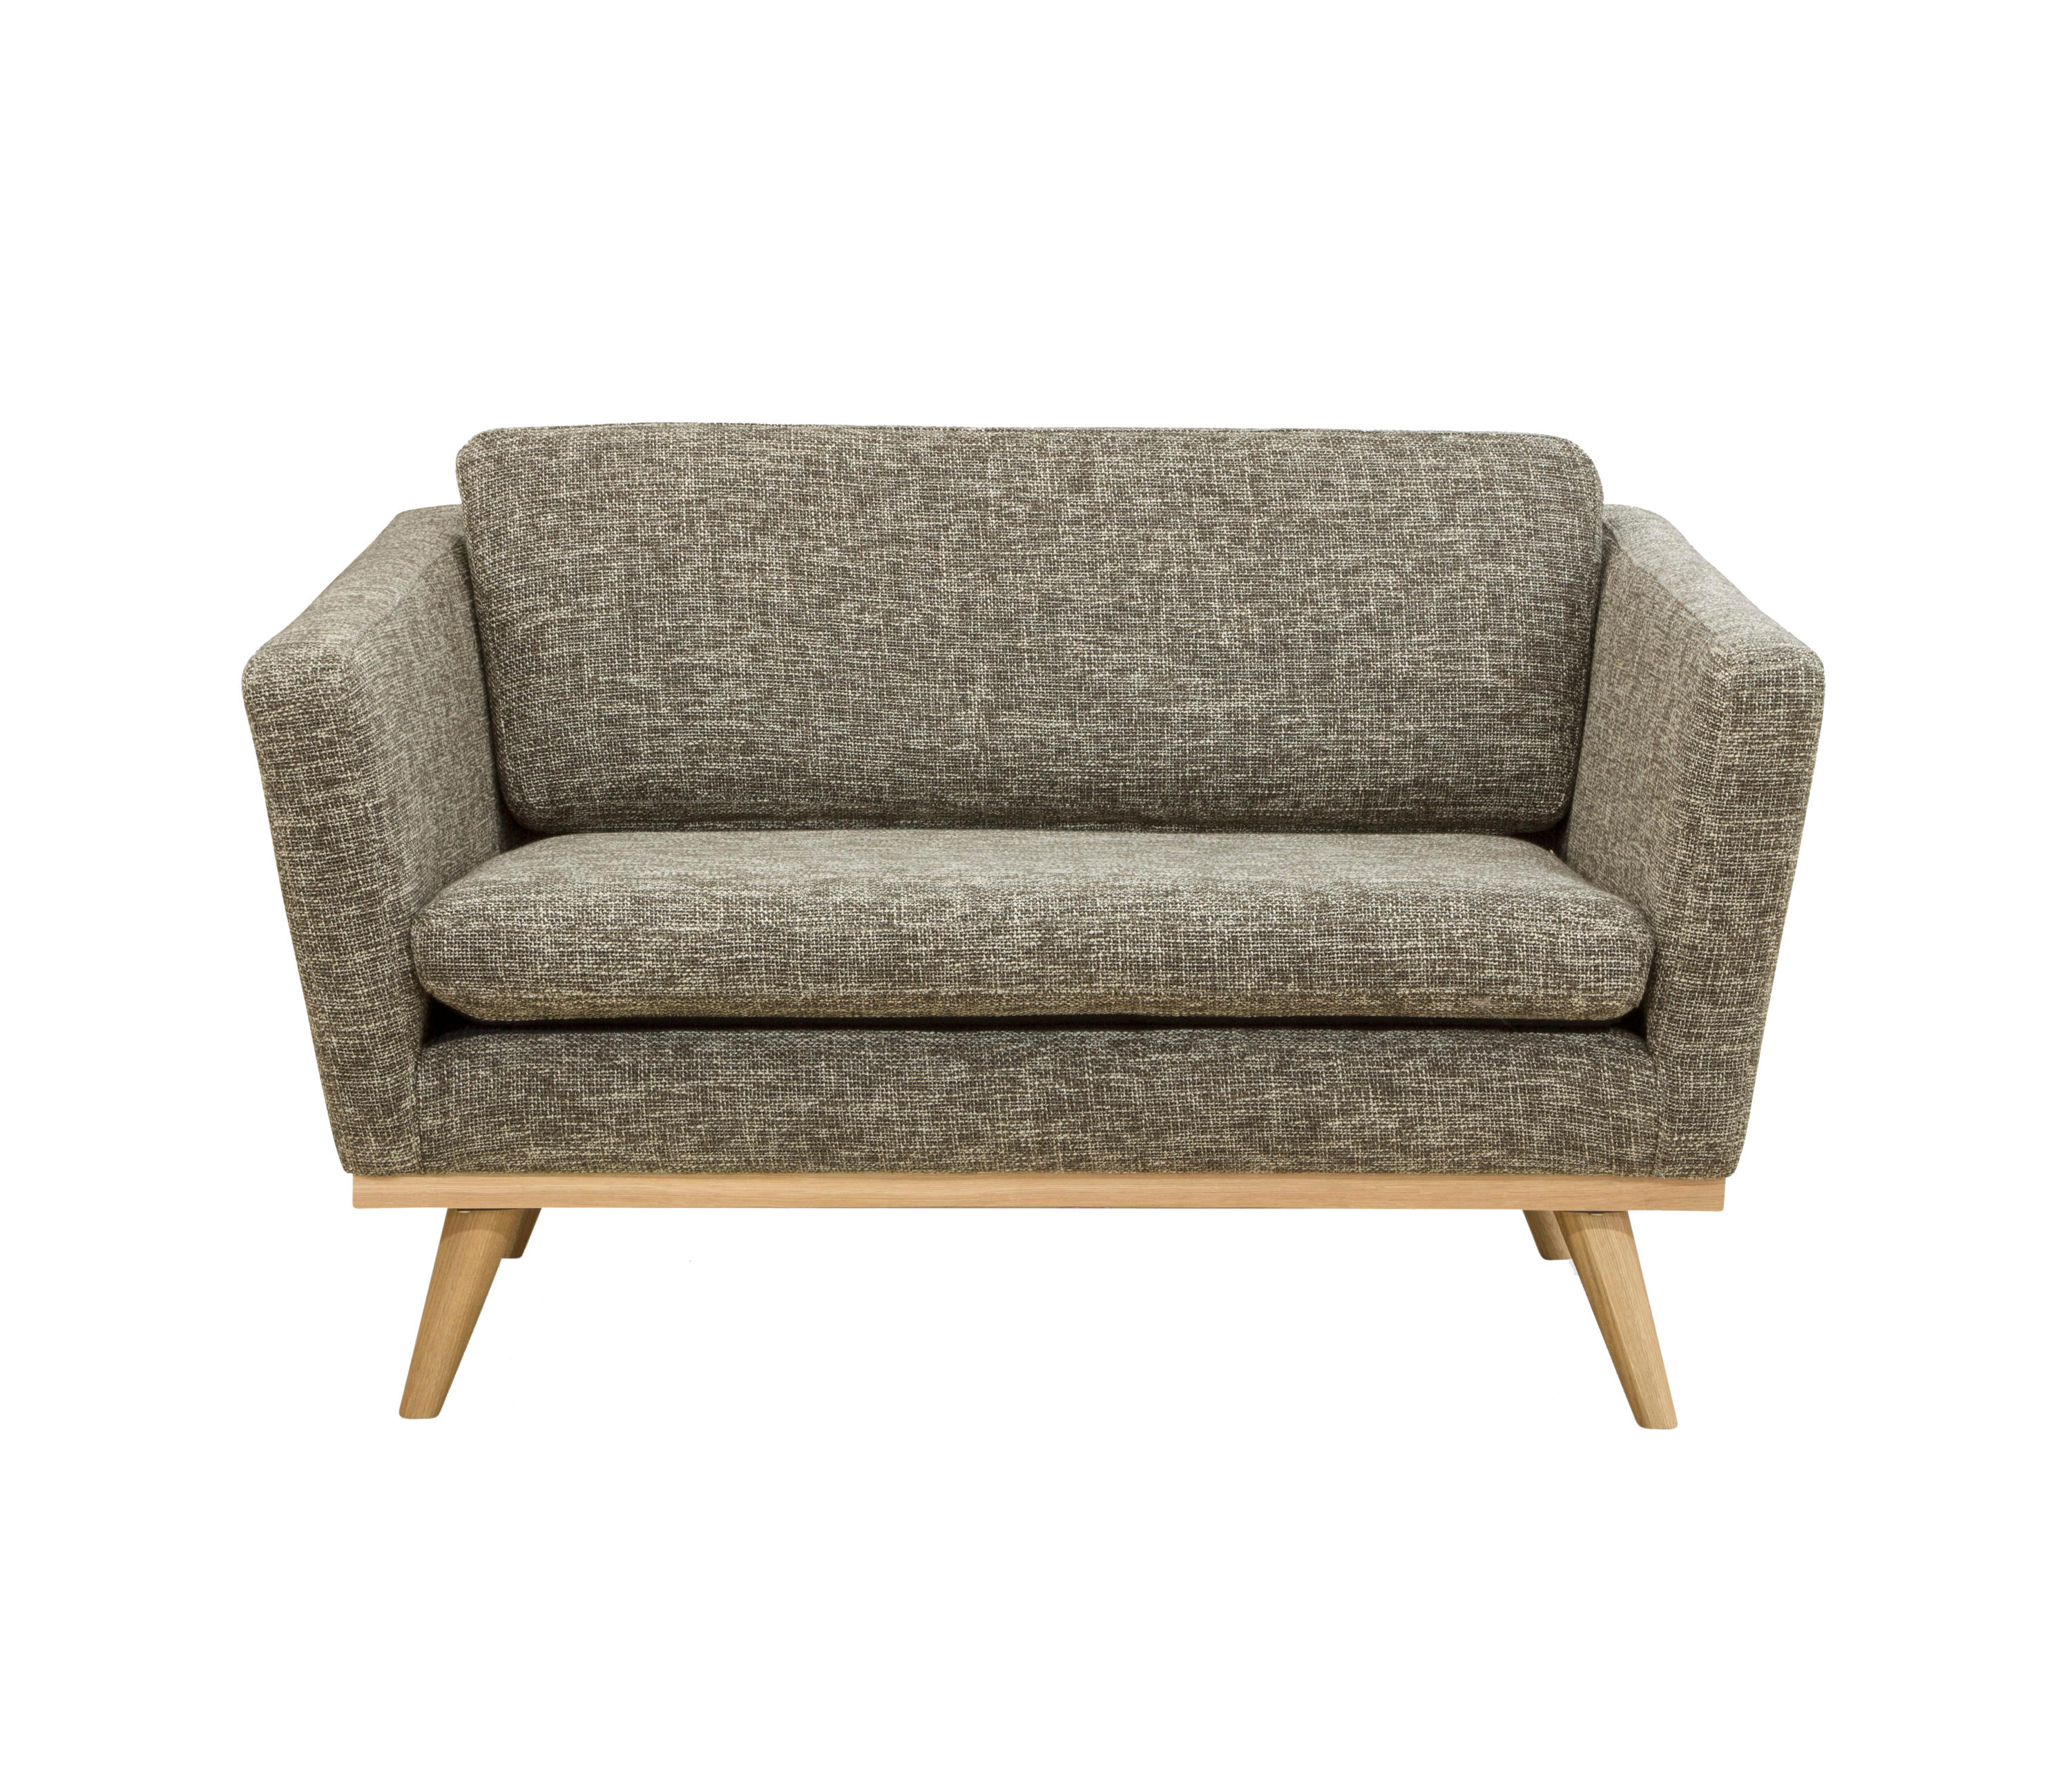 Sofa Suchen 120 Sofa ChinÉ Loungesofas Von Red Edition Architonic